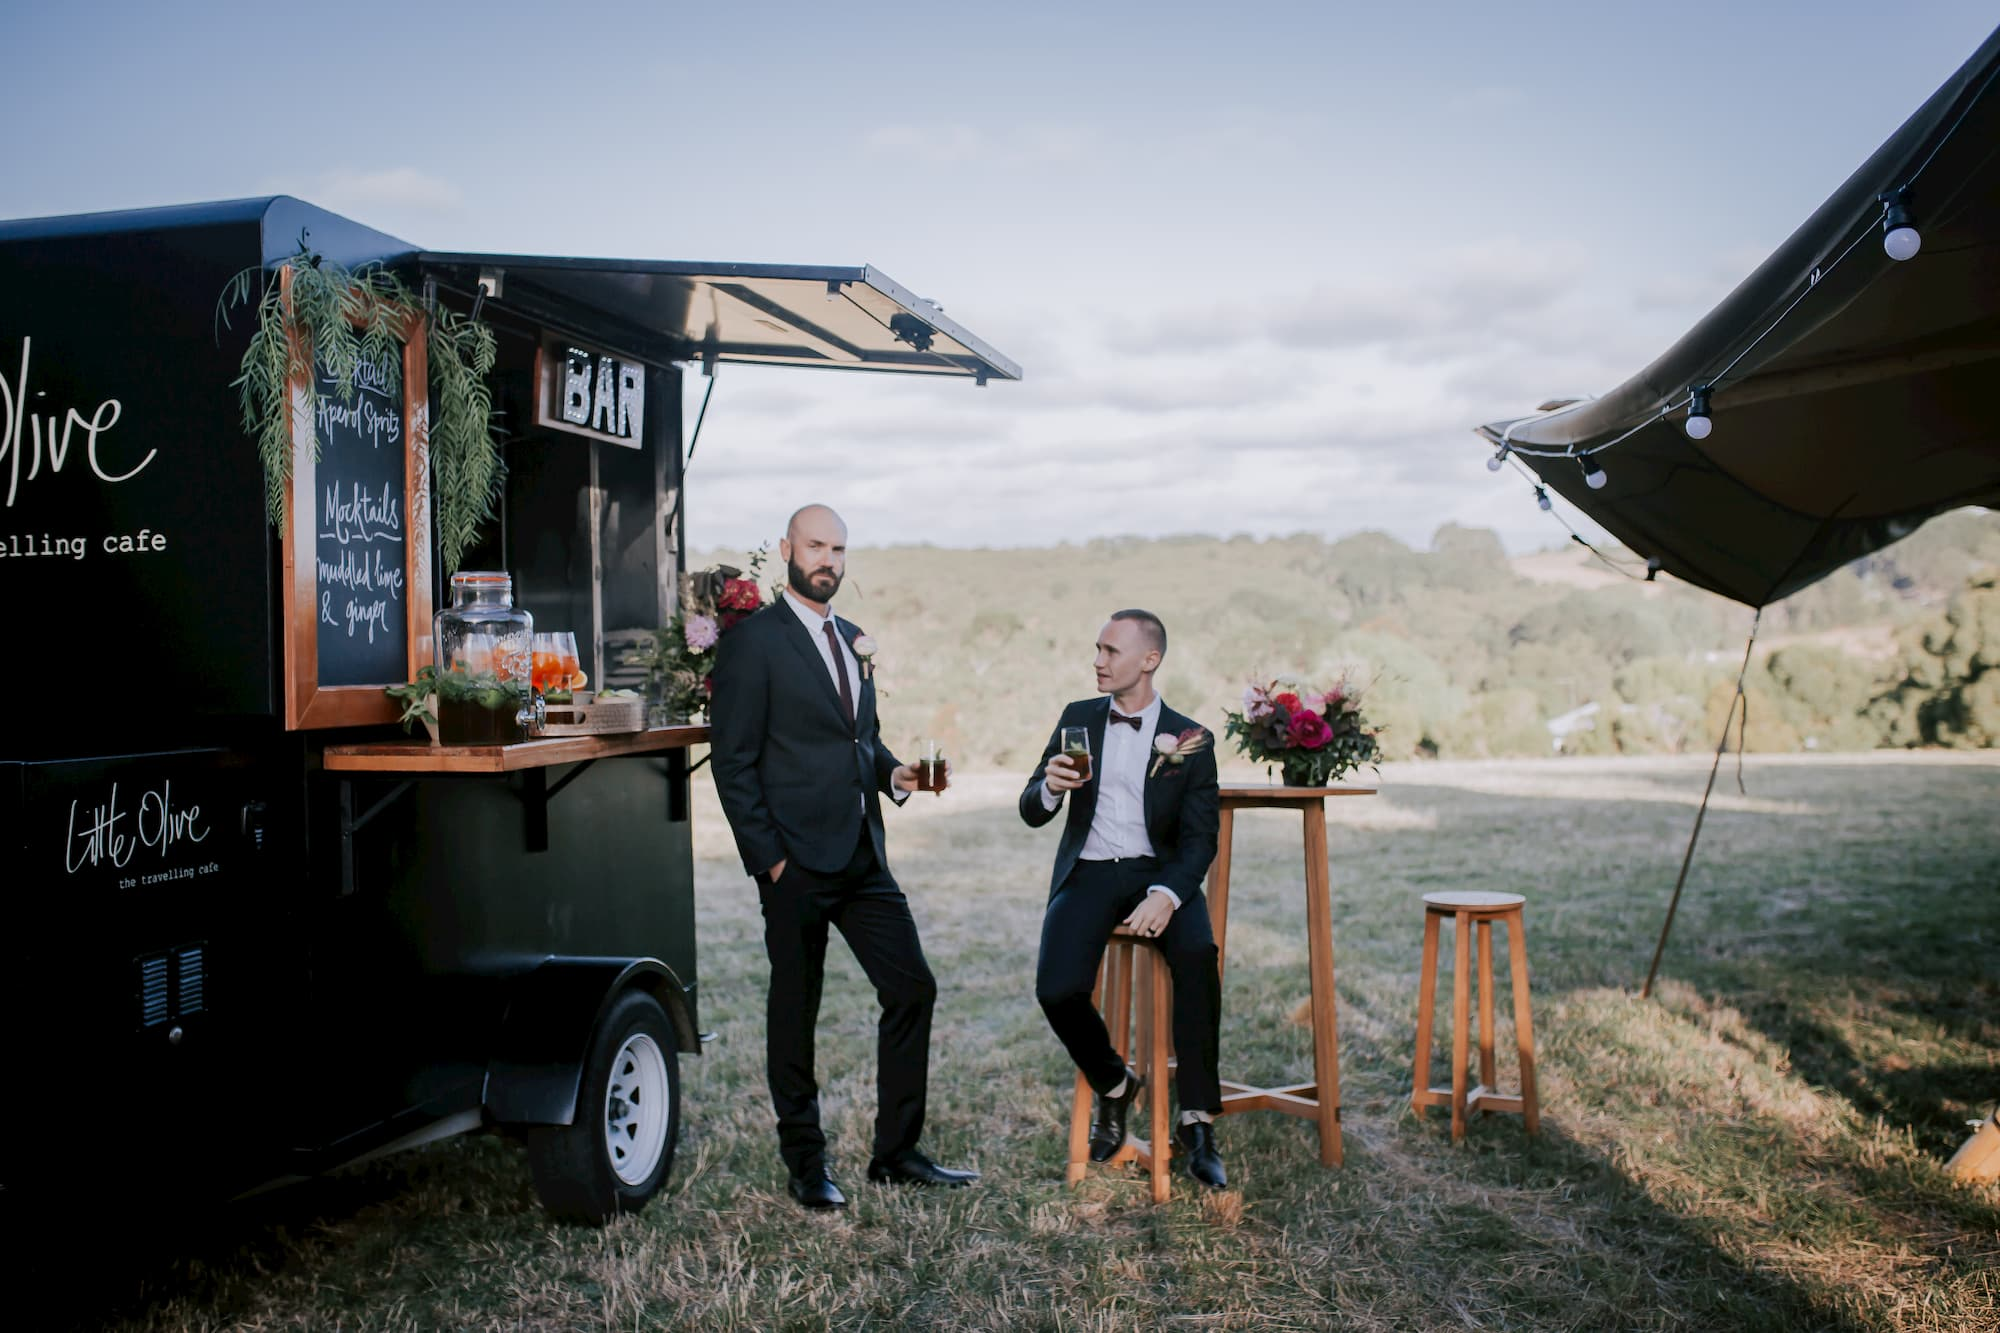 Couple drinks at a mobile bar